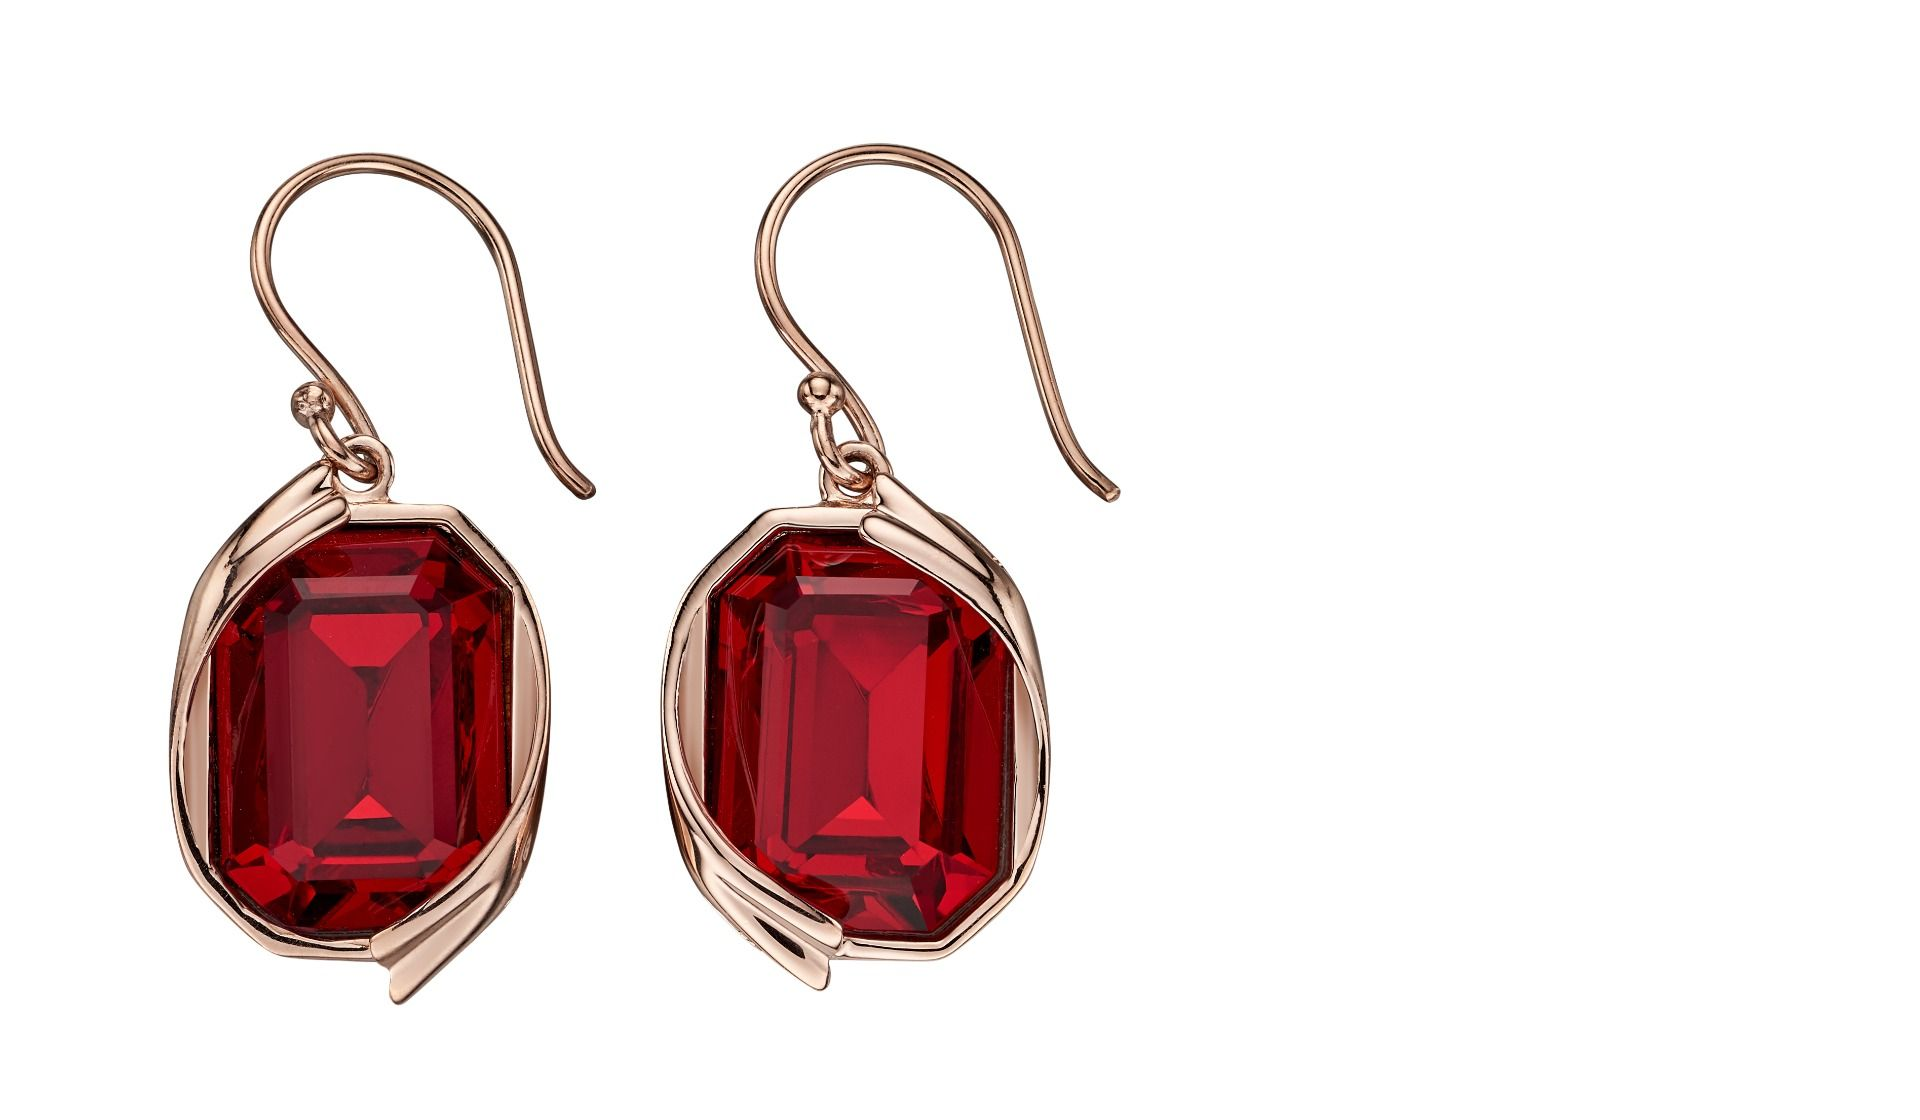 Elements Silver Womens 925 Sterling Silver Siam Red Crystal by Swarovski Rose Gold Hook Earrings E5691R